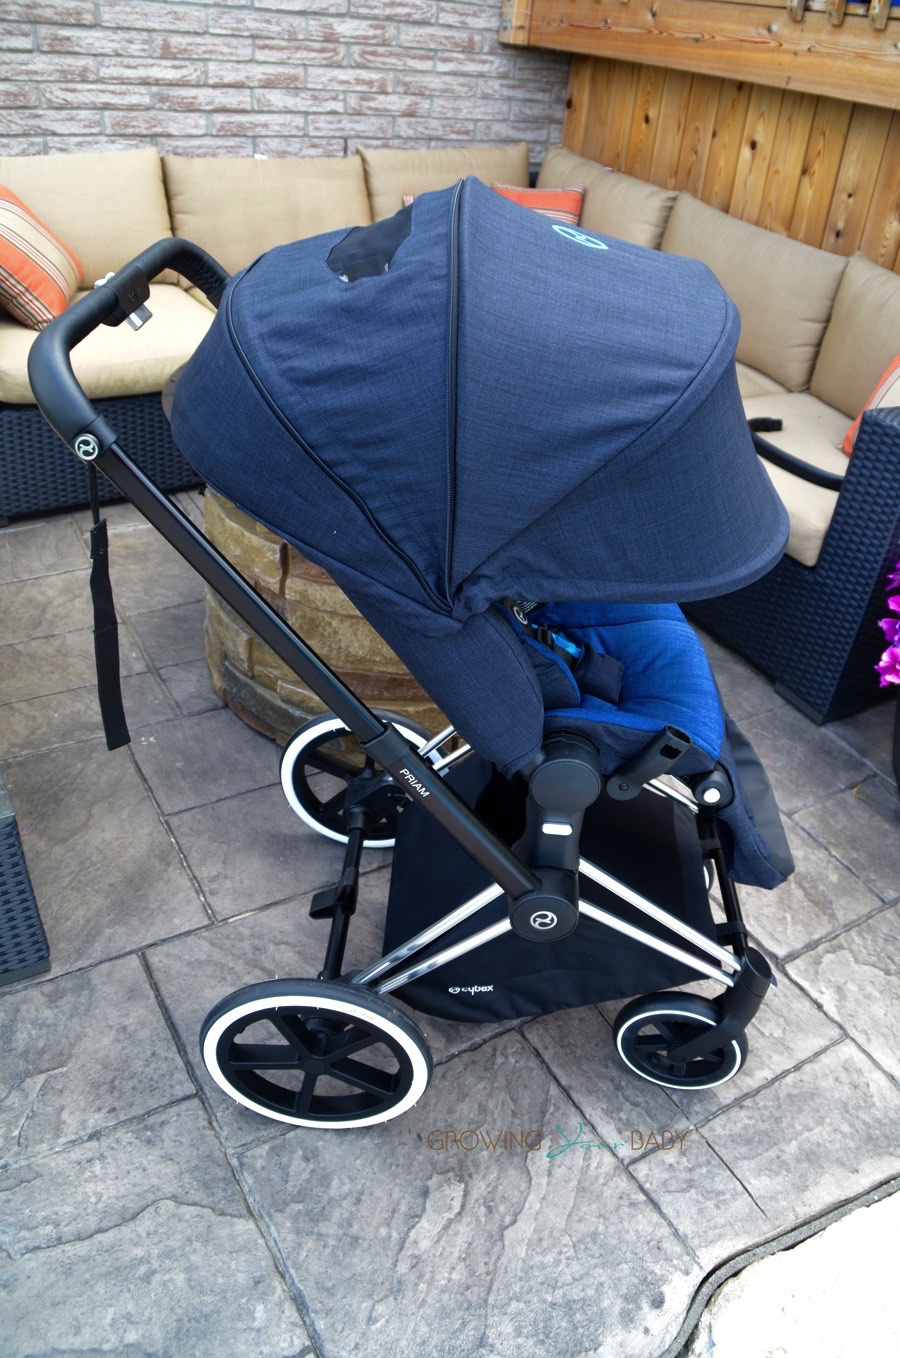 cybex priam stroller canopy extended growing your baby. Black Bedroom Furniture Sets. Home Design Ideas